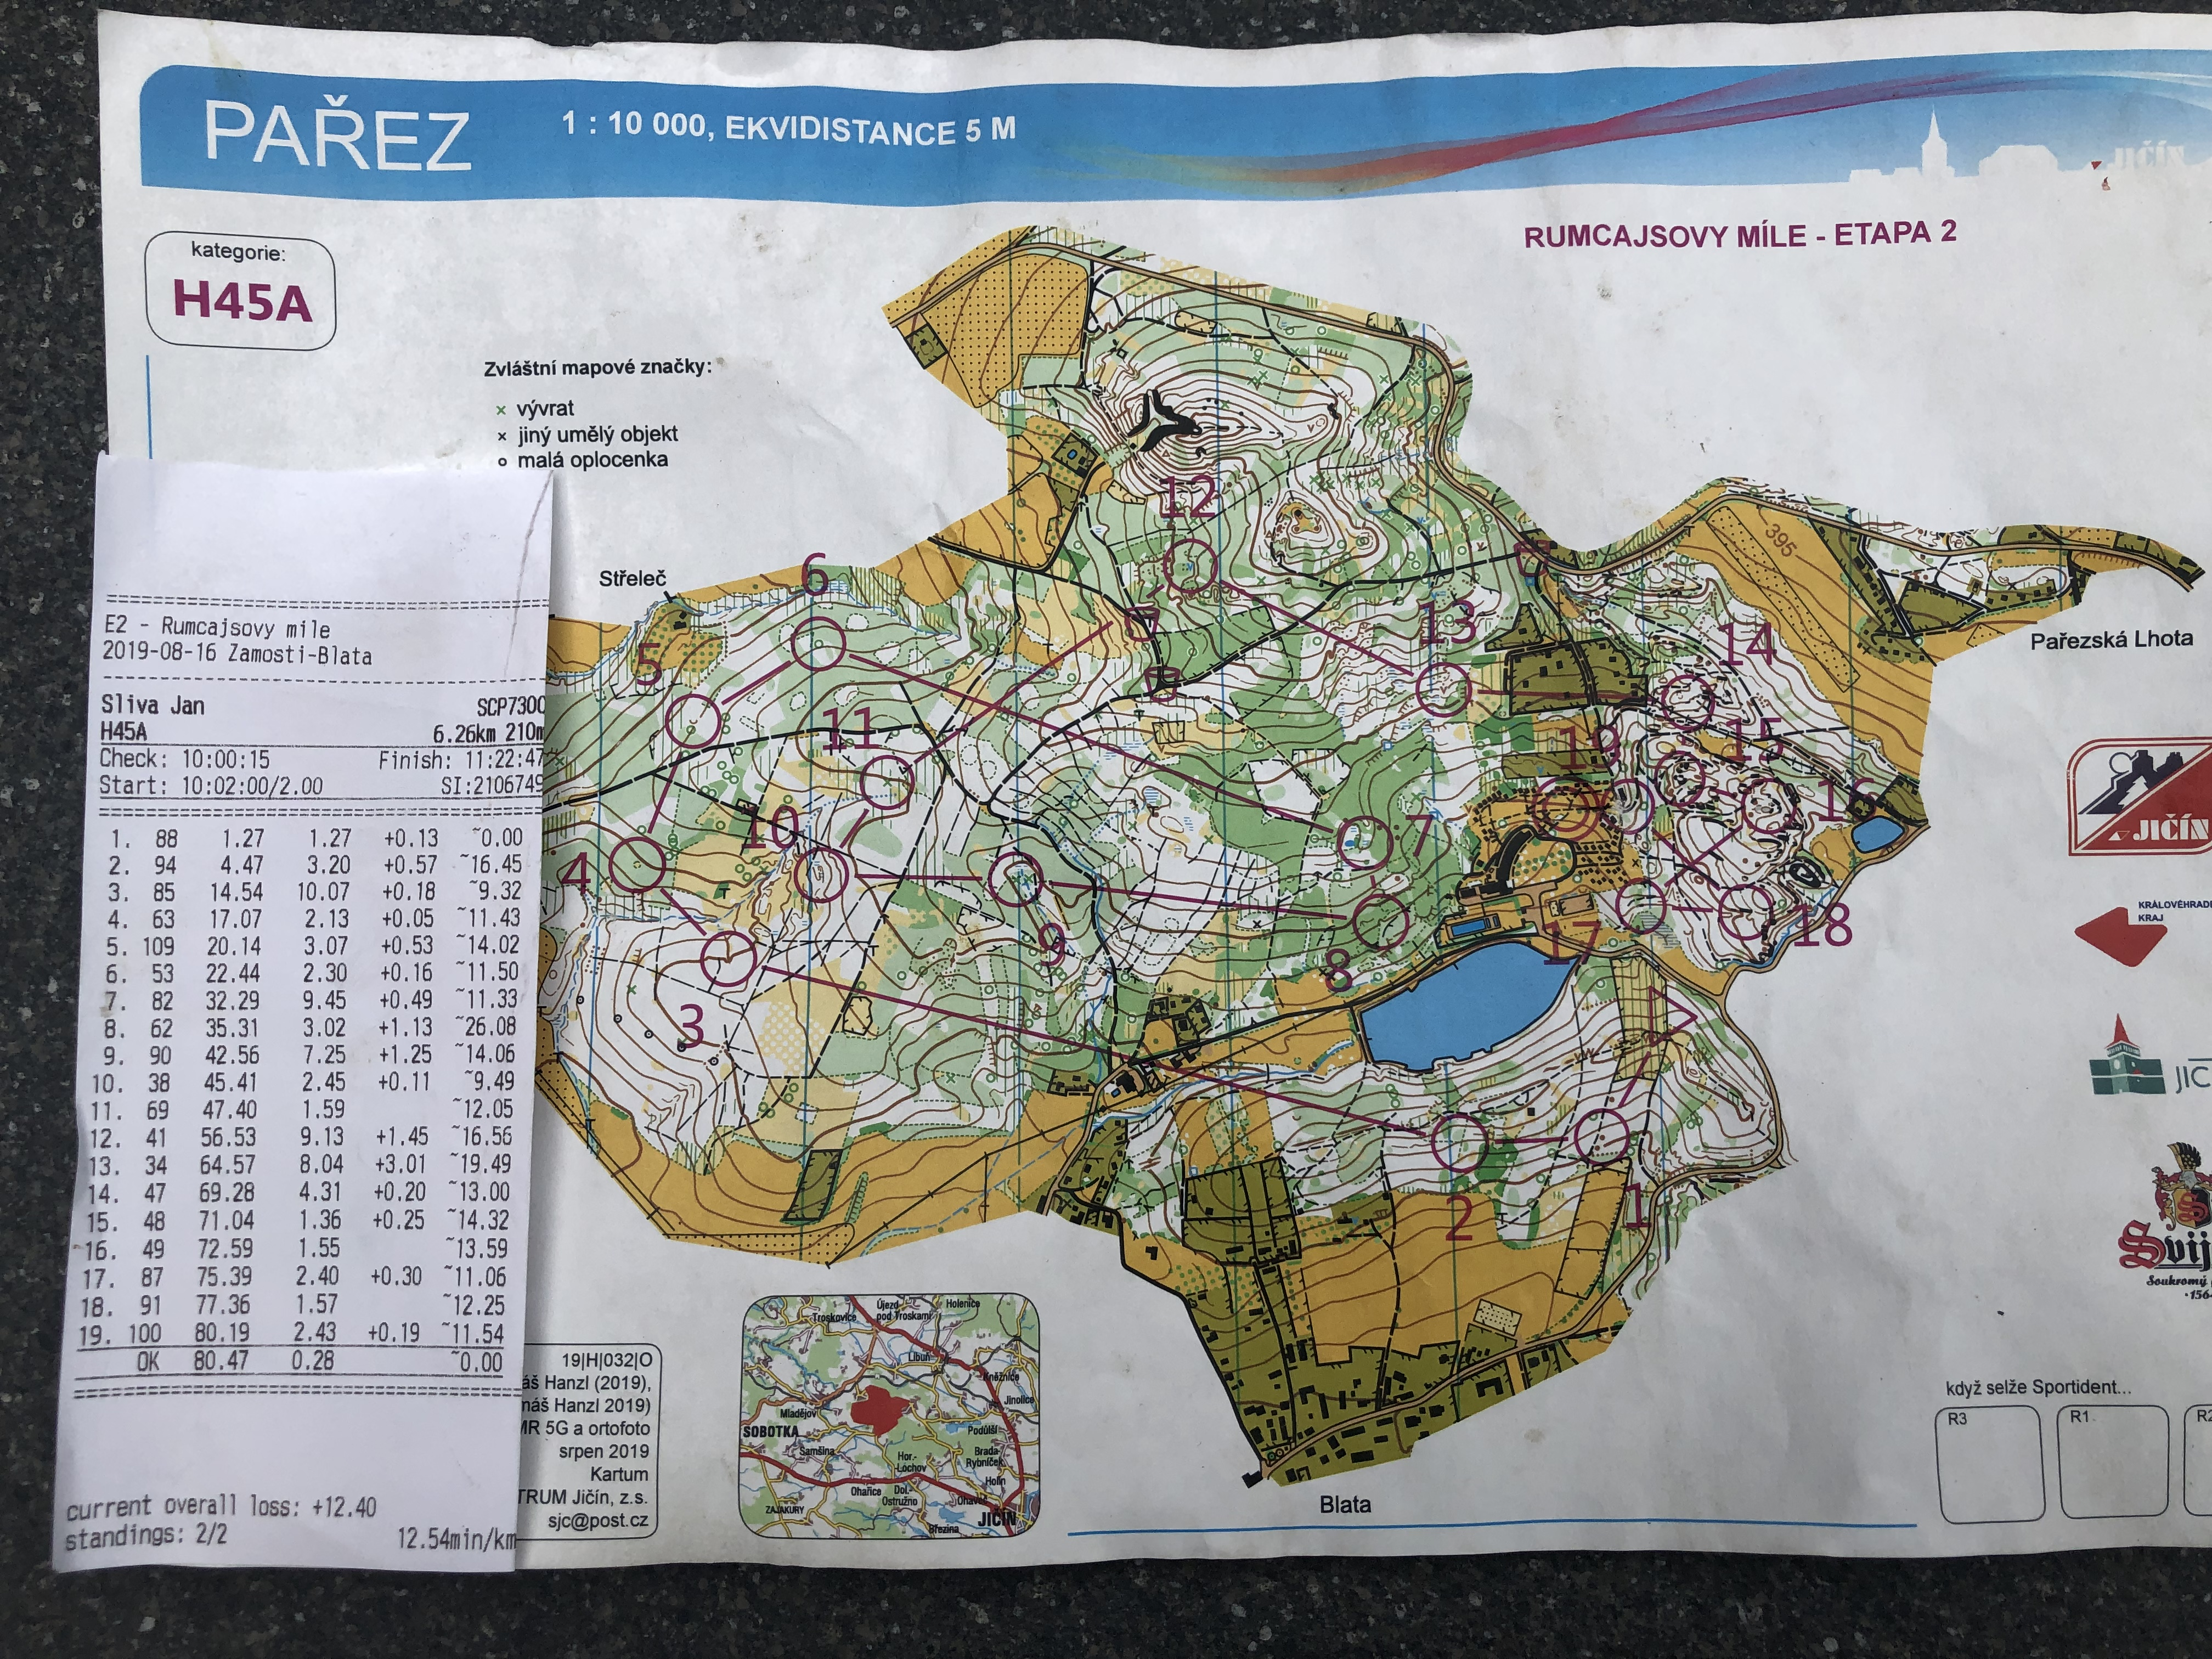 Rumcajsovy mile - stage 2. H45A (17/08/2019)